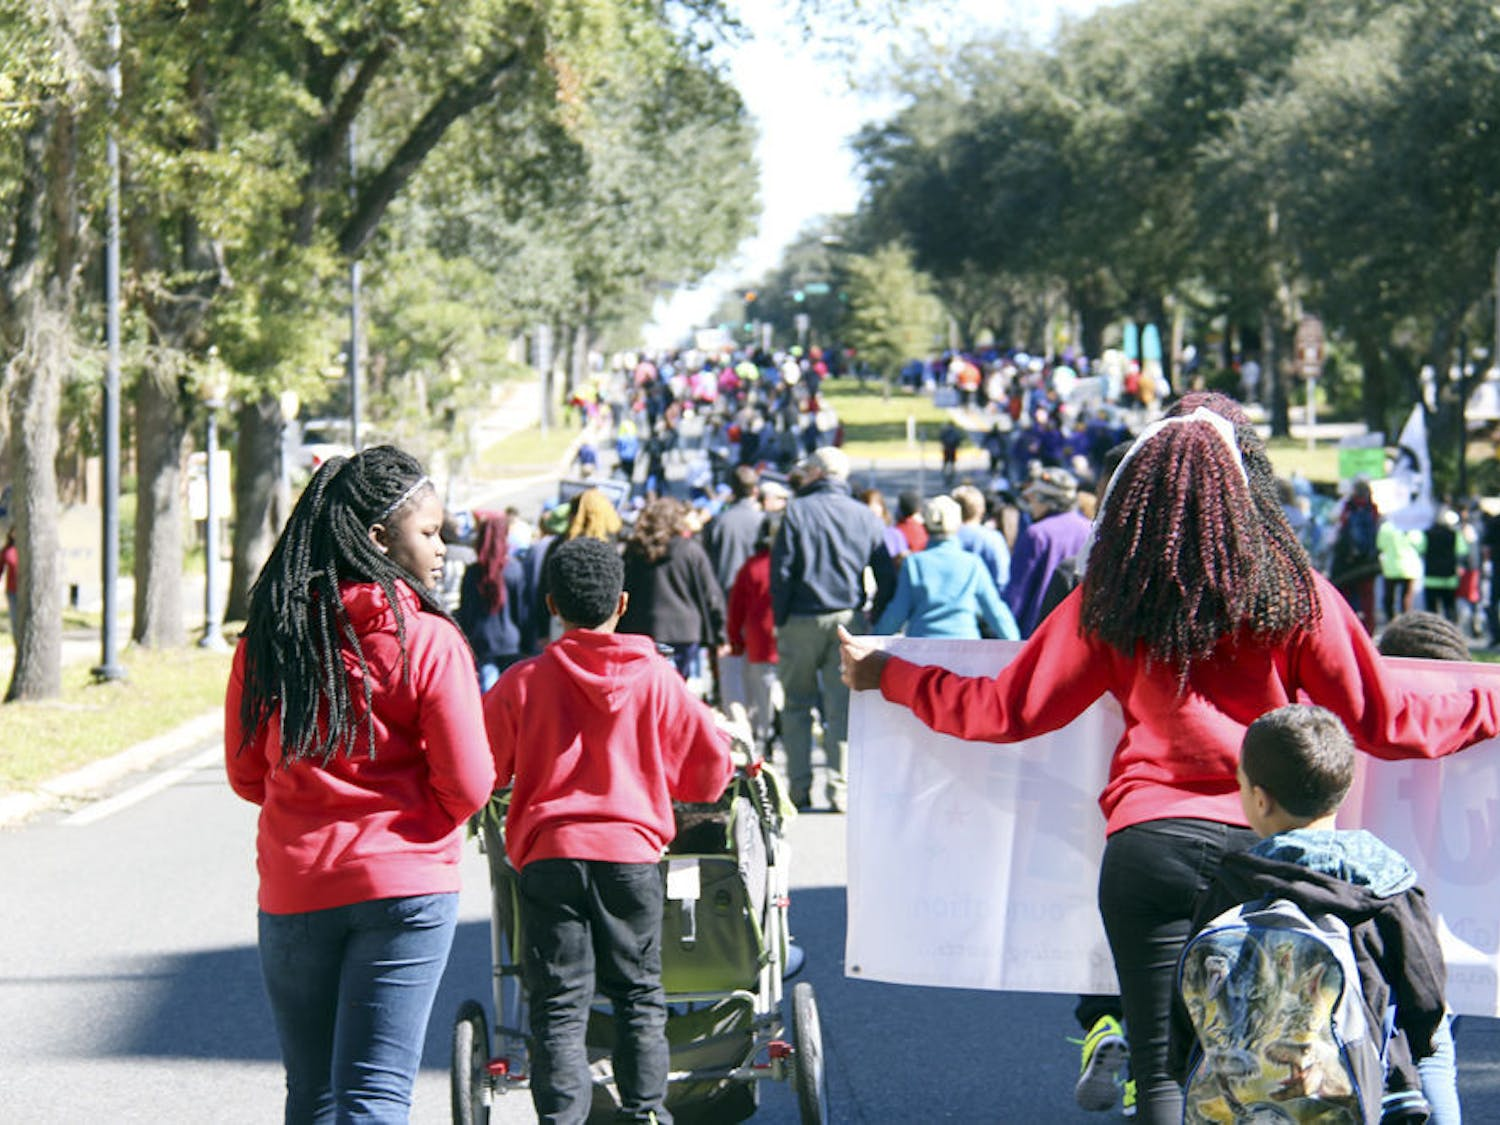 Hundreds of people showed their support for Martin Luther King Jr. and the equality for which he stood by walking east down University Avenue on Jan. 18, 2016. Some held signs for other causes they supported, such as stricter gun laws or mayoral candidates in Gainesville, while others walked with friends from church and sang impromptu, uplifting songs along the way.